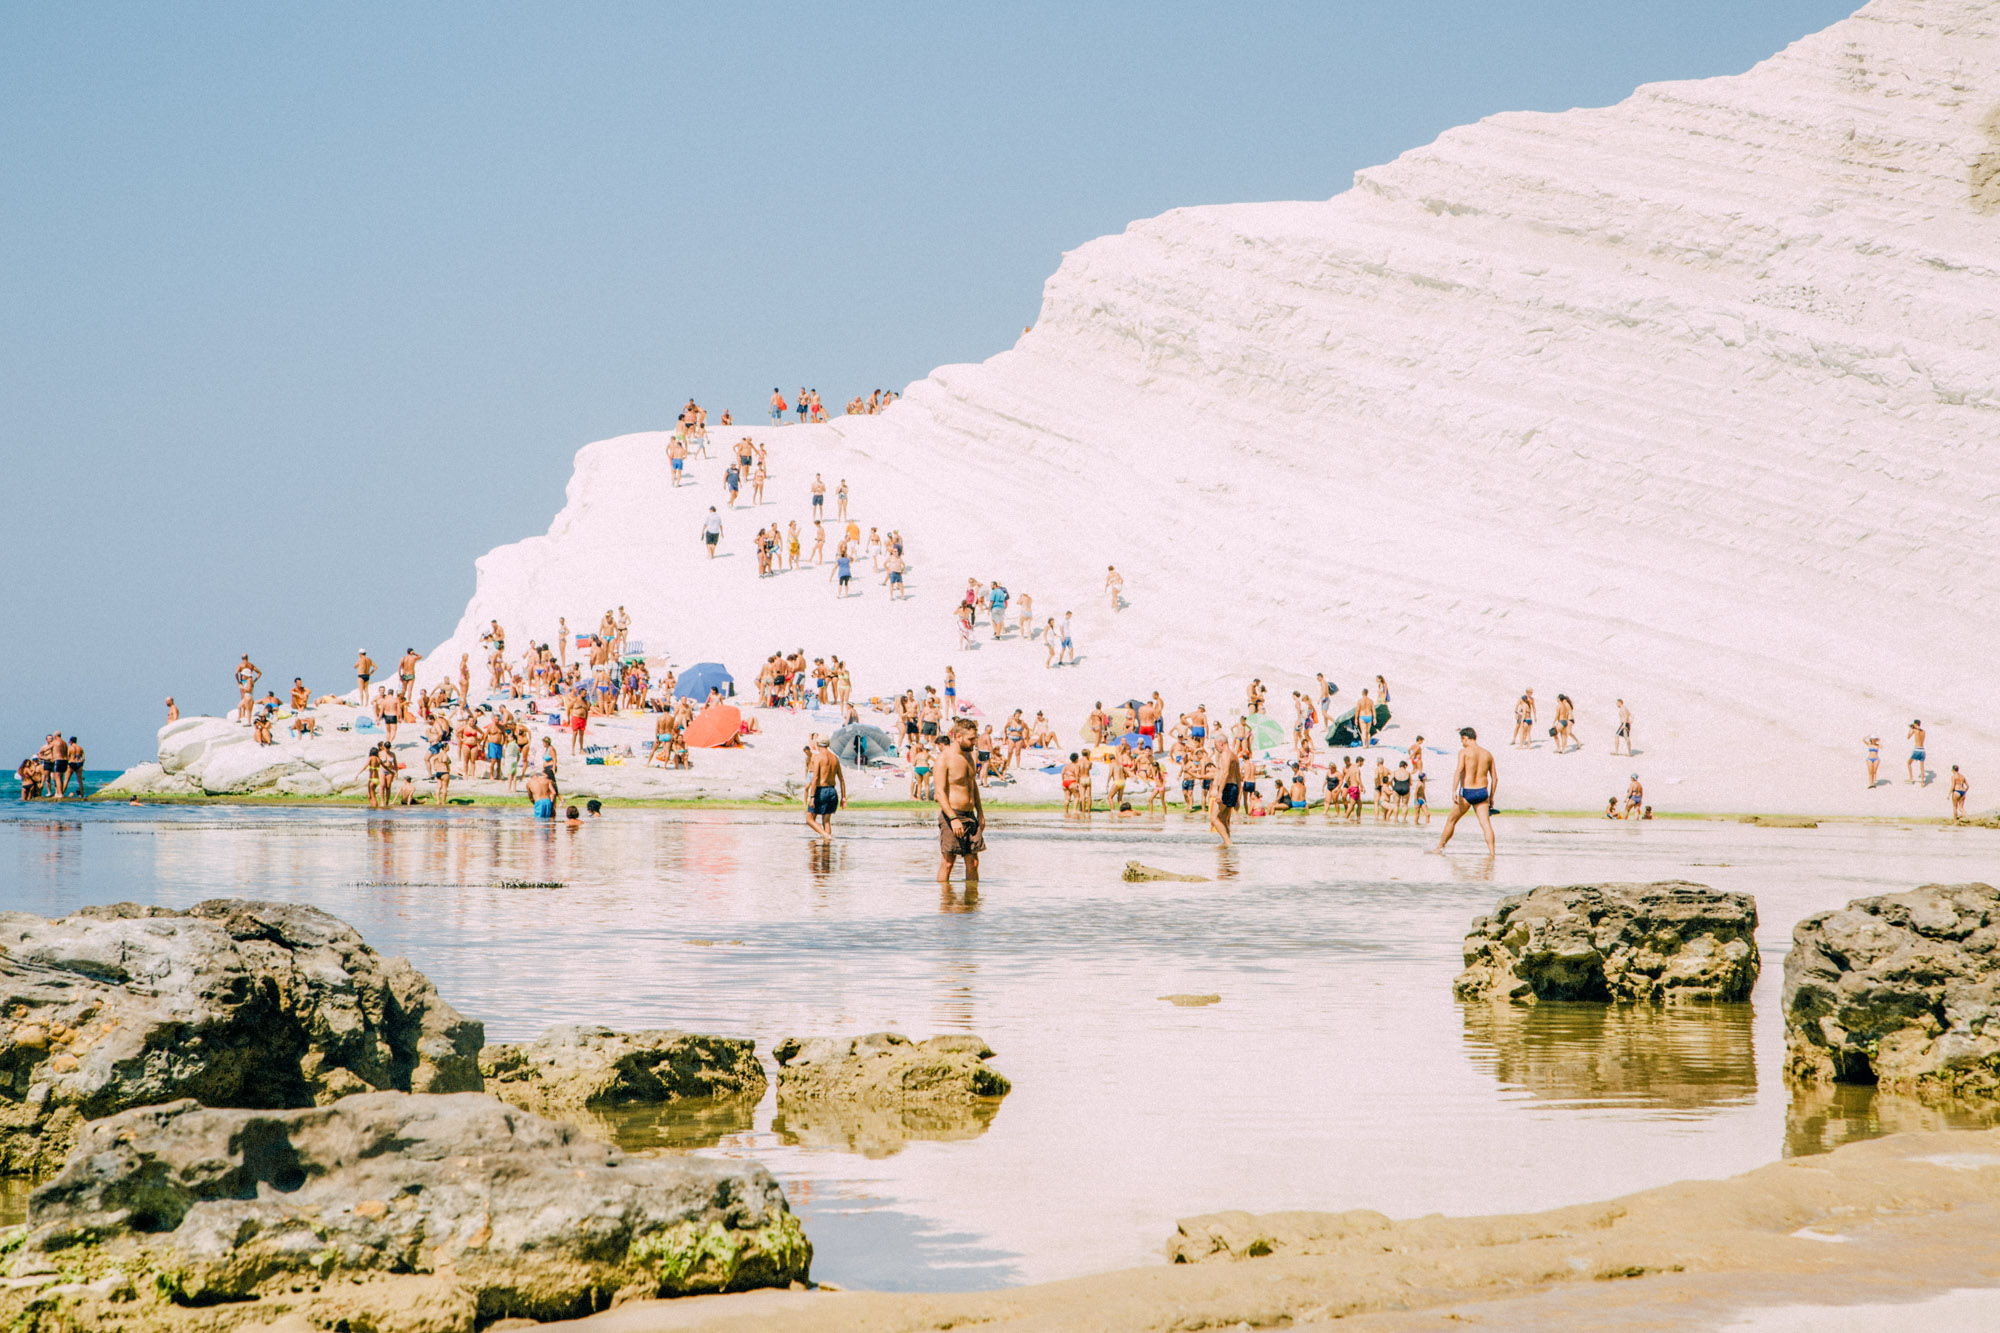 Scala dei turchi - Agrigento - Sicily - Italy - Jeff On The Road - Photo by Don Fontijn on Unsplash - https://unsplash.com/photos/-MQAfbqgzD4